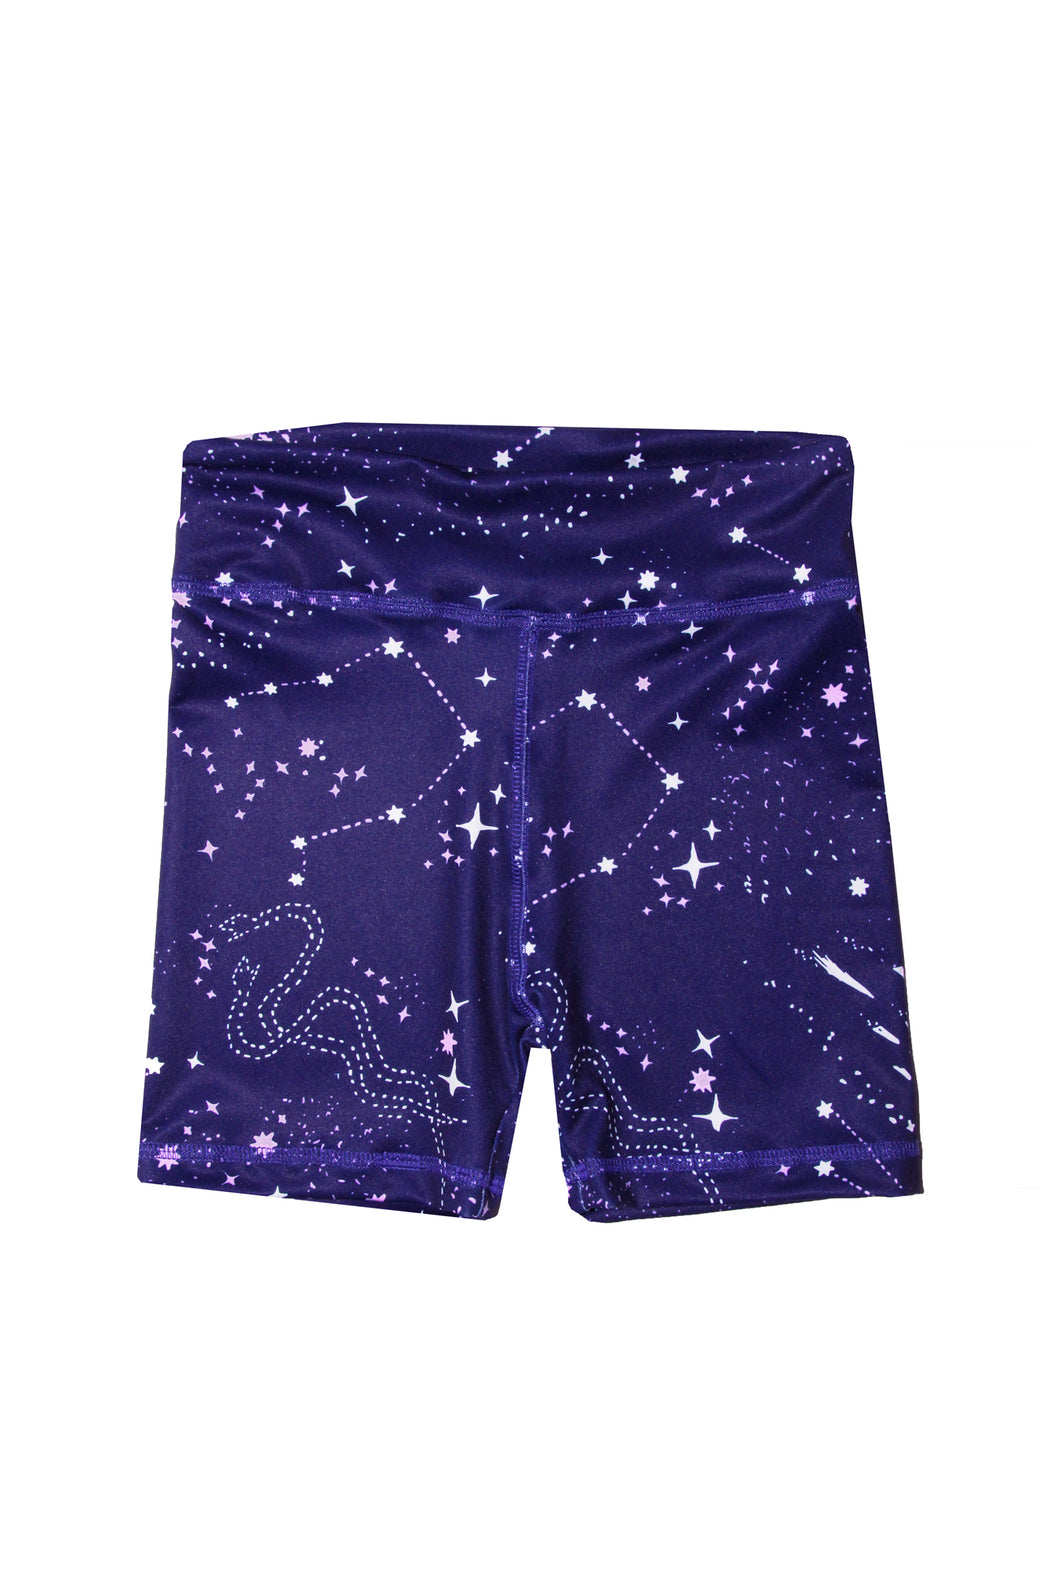 Stardust Workout Shorts